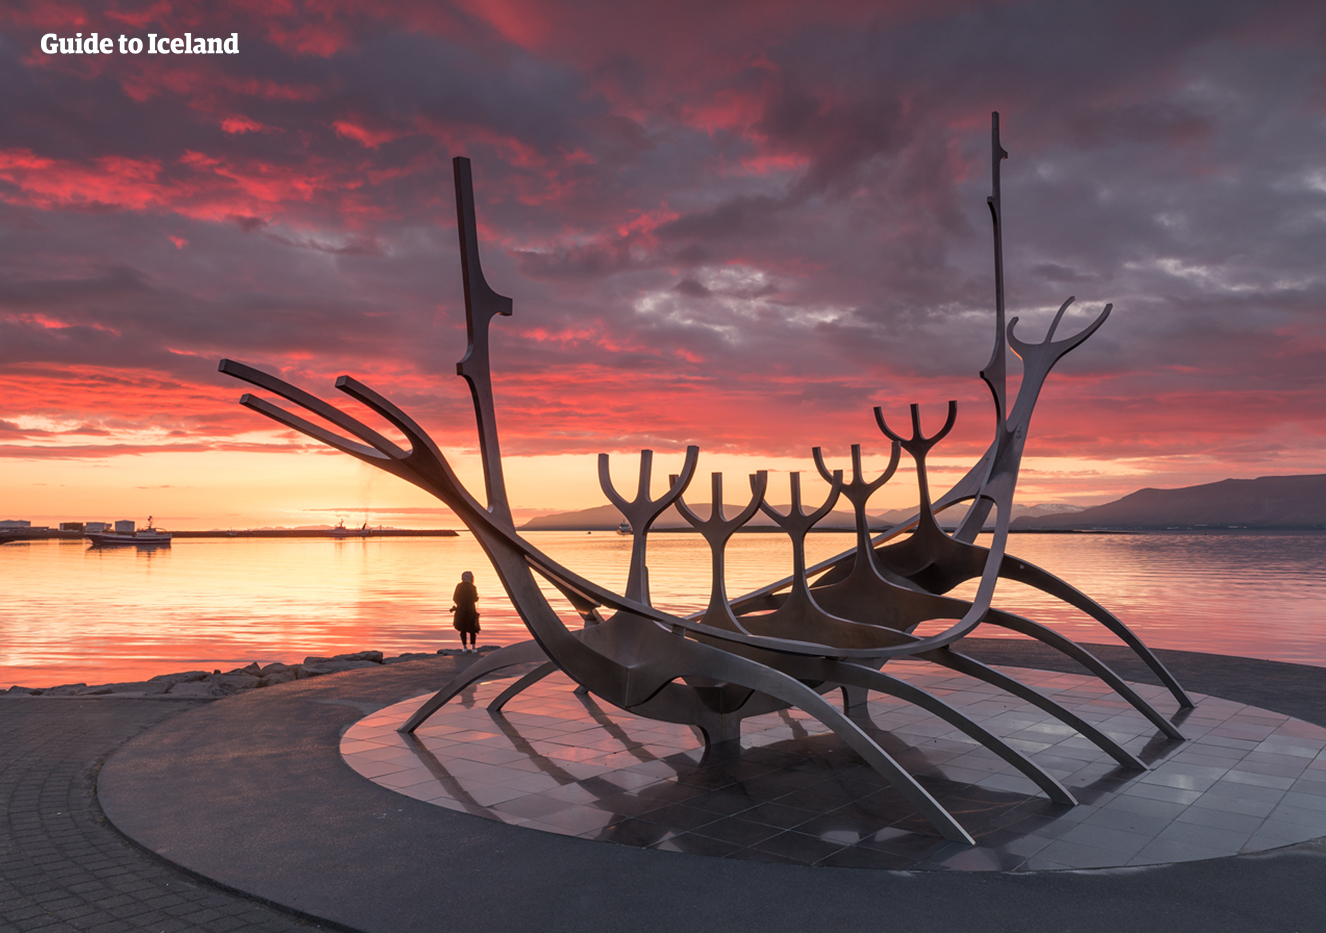 Reykjavík is brimming with opportunities, from exciting nighttime bars to sophisticated museums and art galleries.